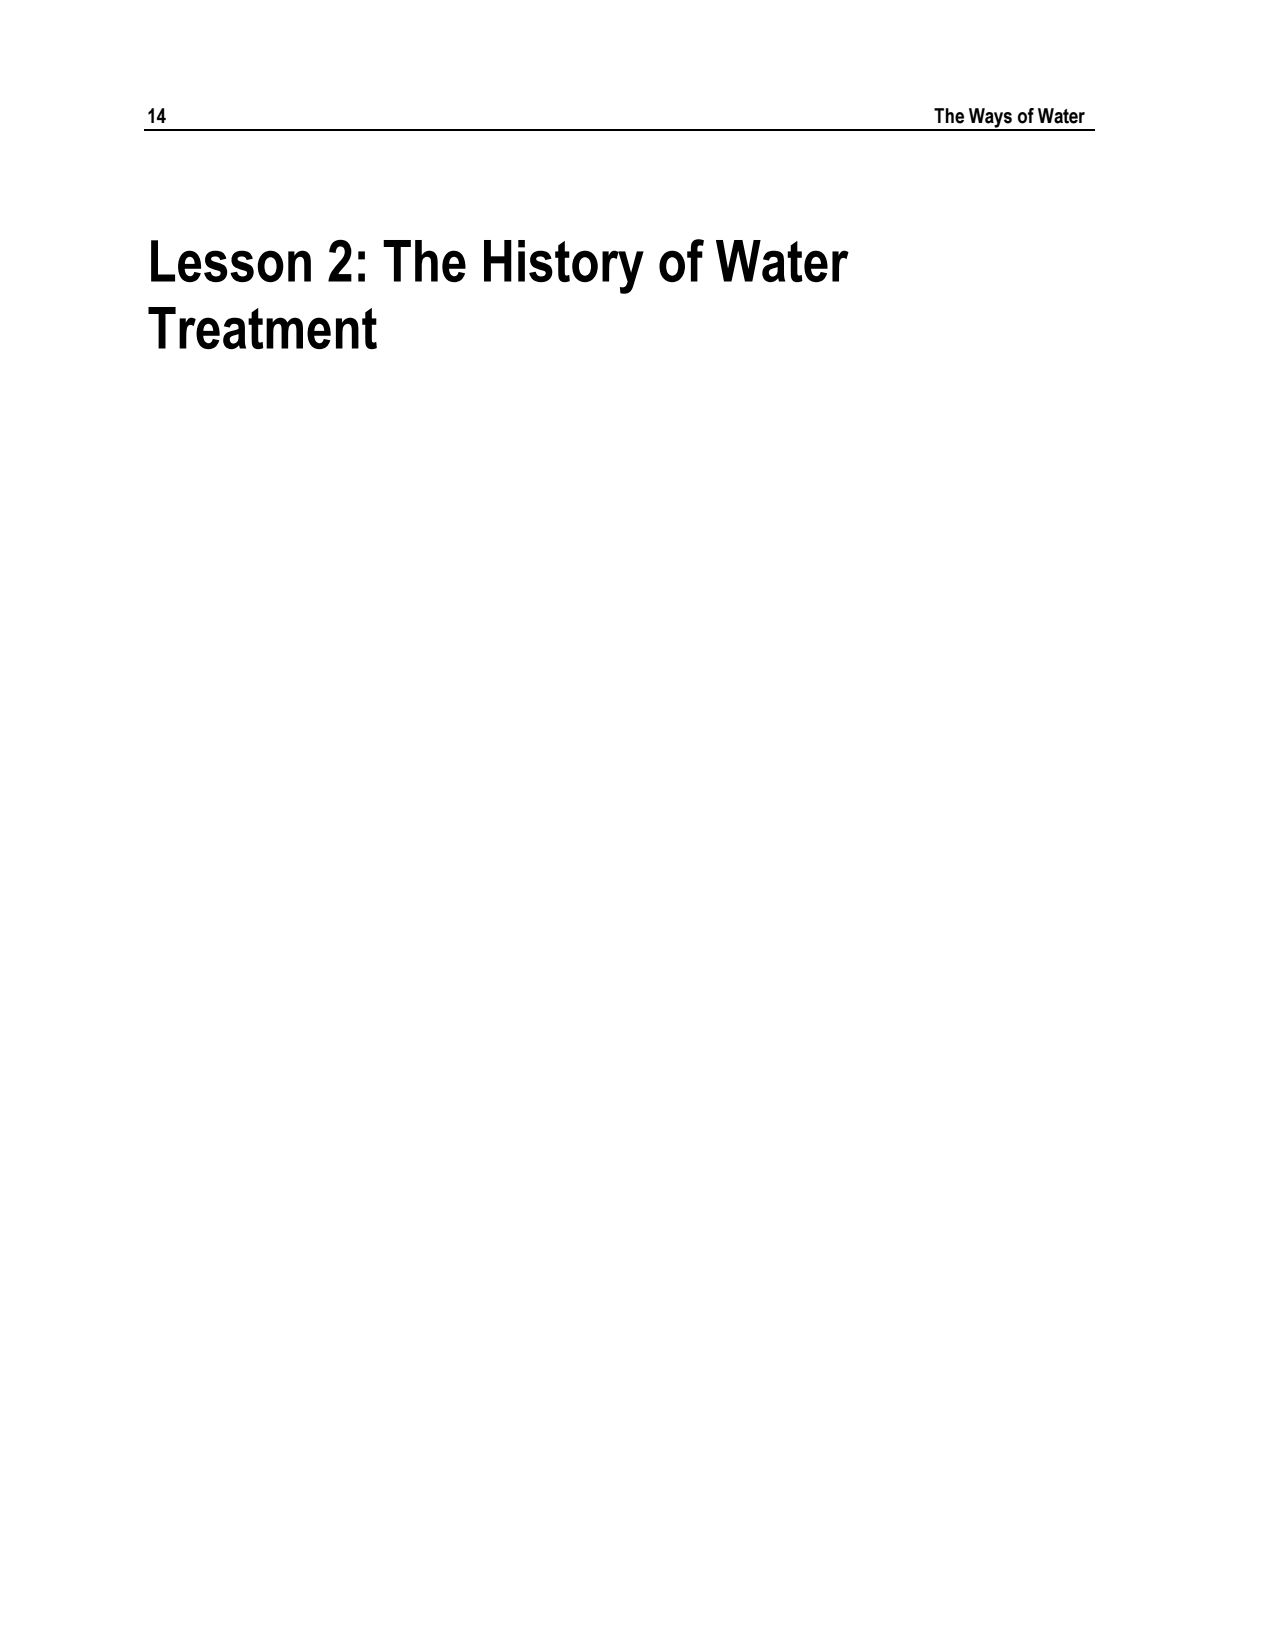 Lesson 2 – History of Water Treatment